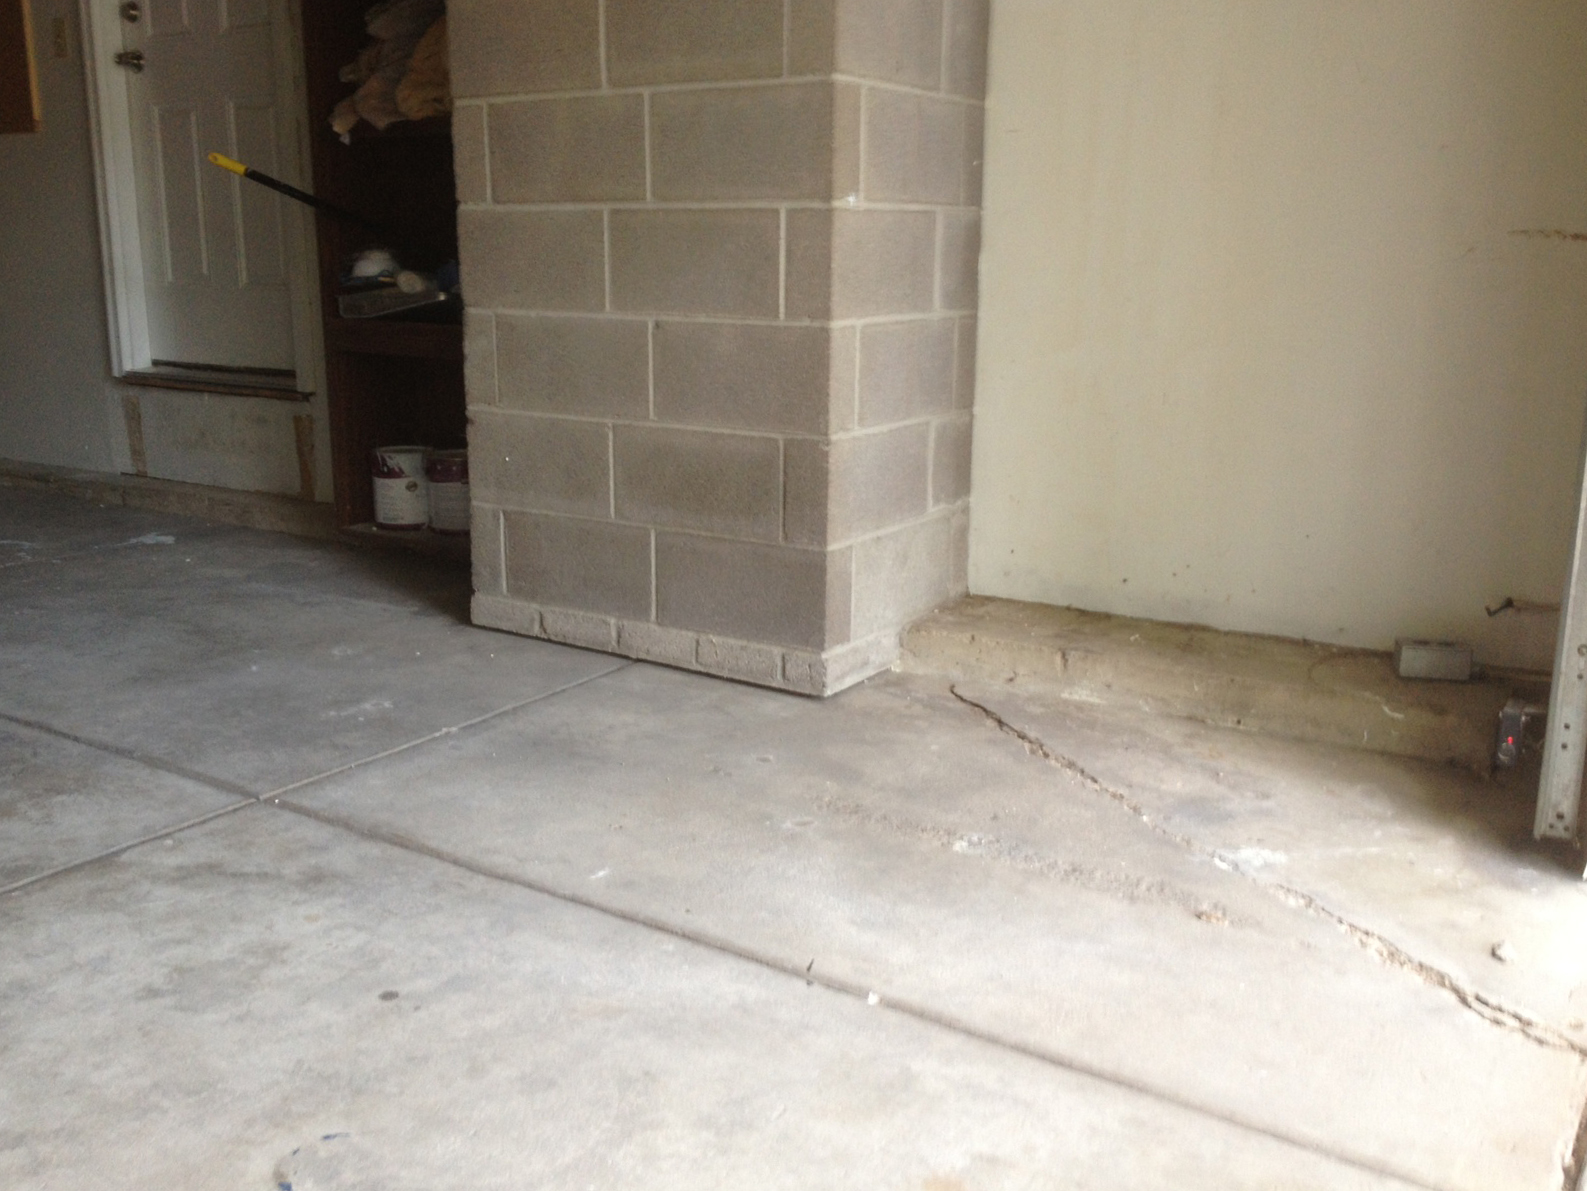 Concrete garage floor after being lifted